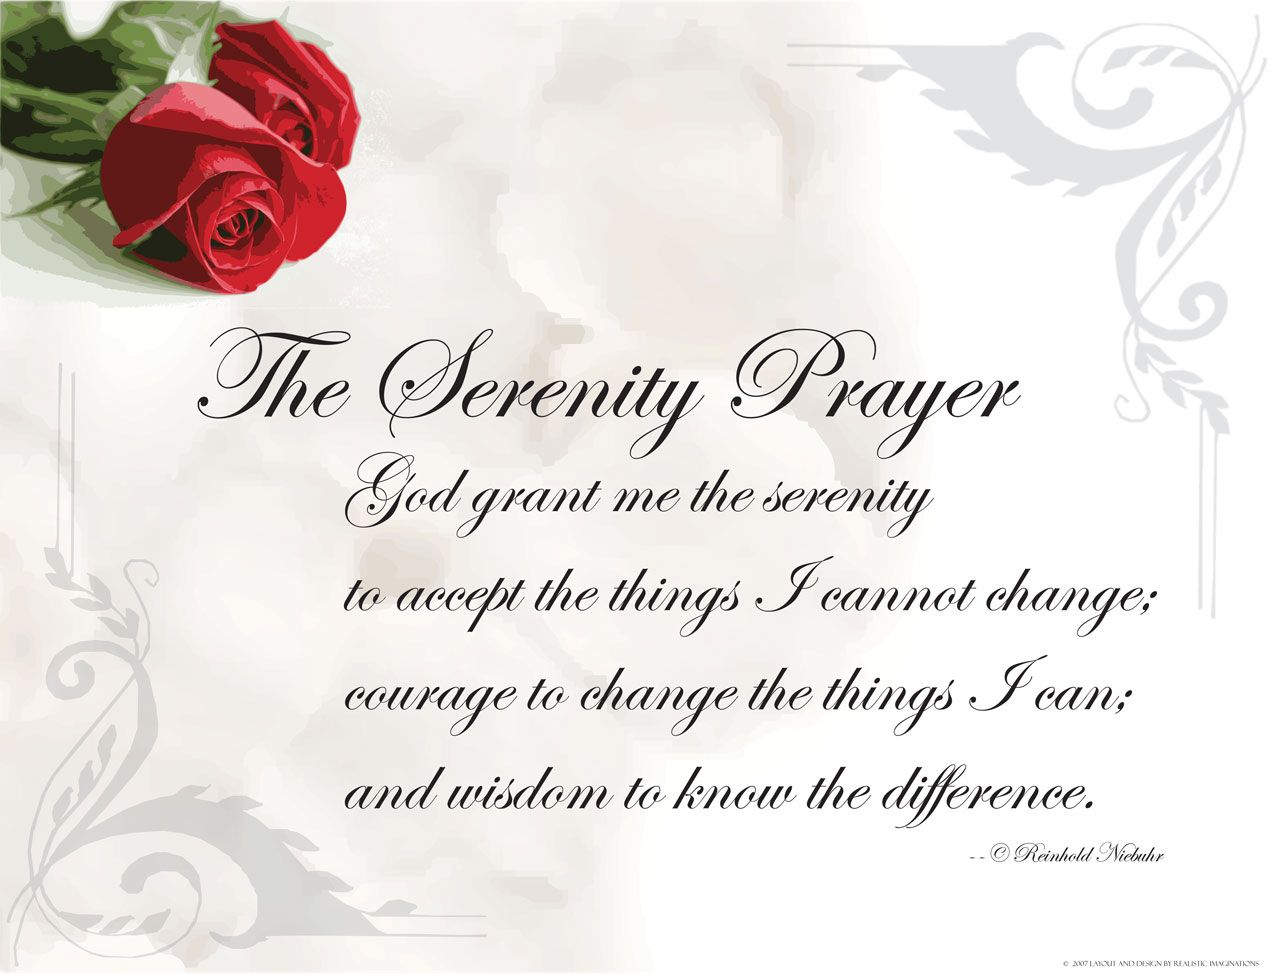 Serenity Prayer The Serenity Prayer Wallpaper Christian Wallpapers And Backgrounds Serenity Prayer Serenity Prayer Wallpaper Serenity Quotes